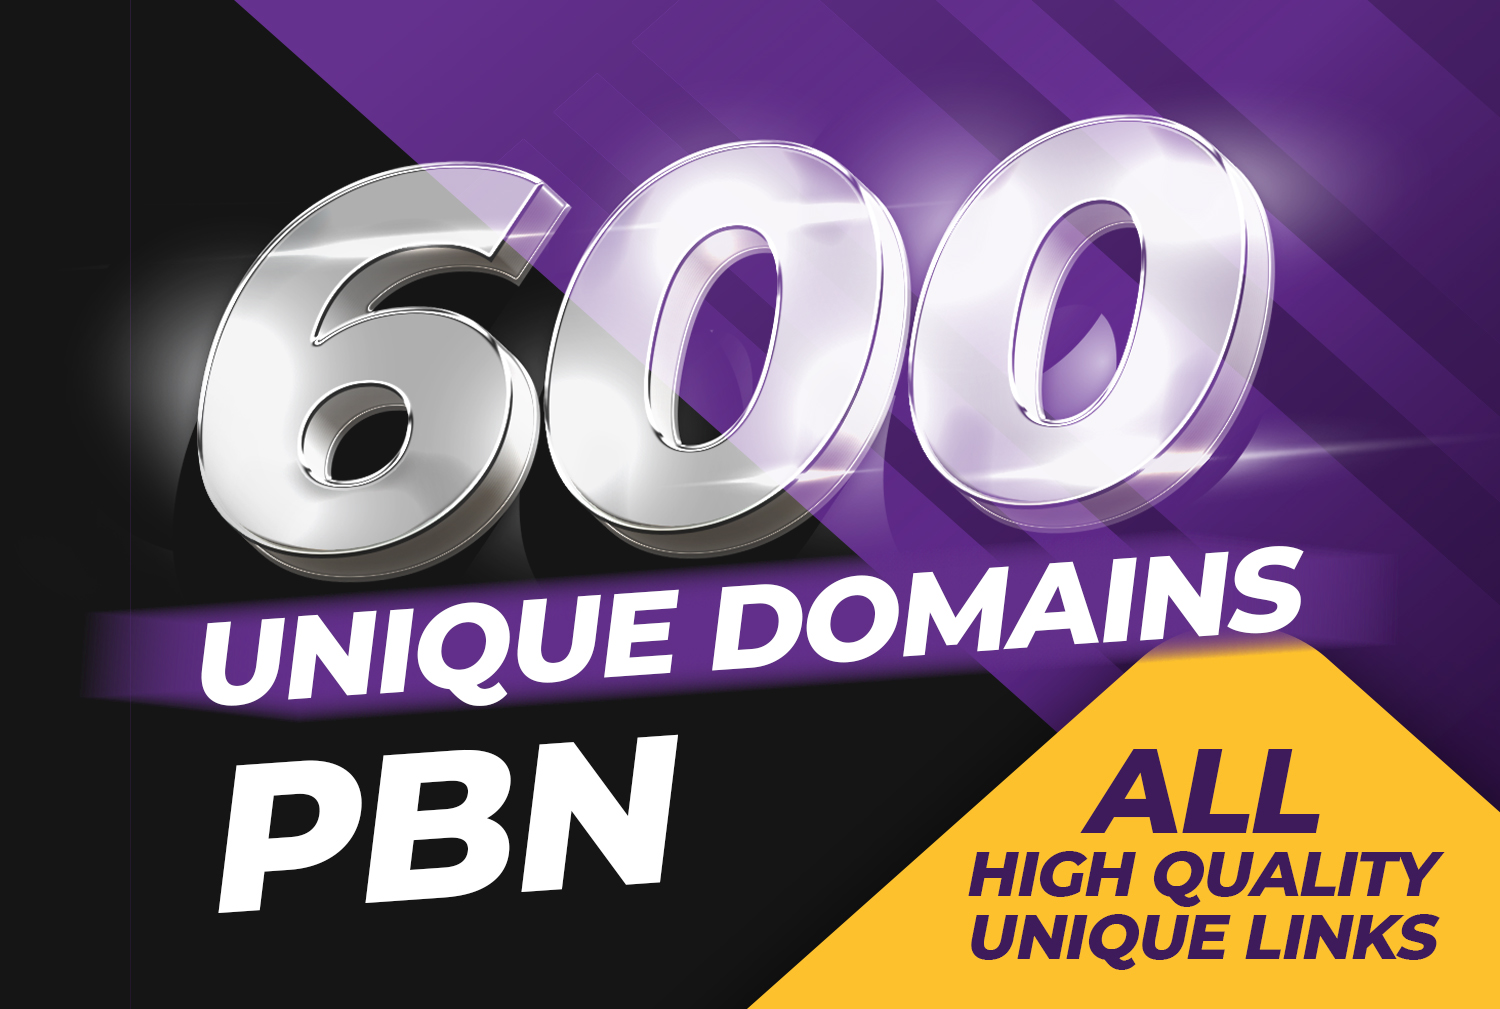 Get 600 REAL PBN all unique domain Actual PBN links